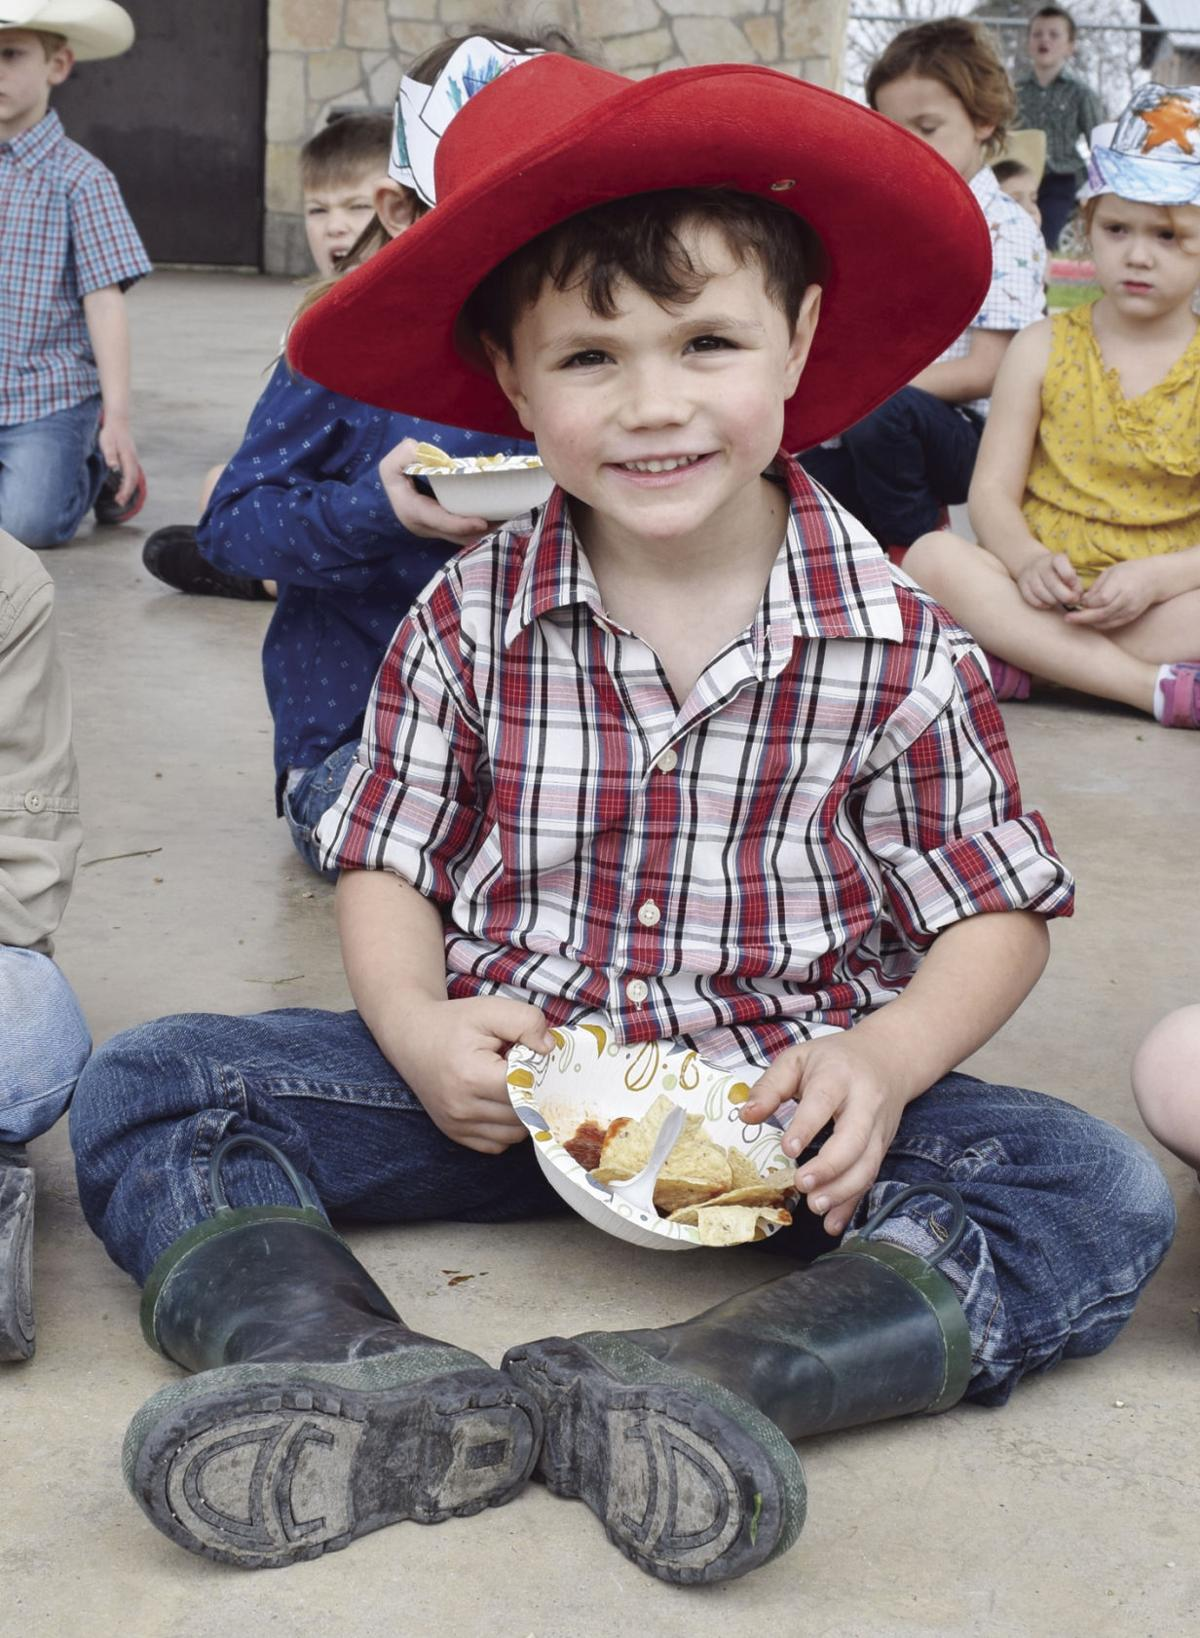 St. Peter's: Young Cowboy